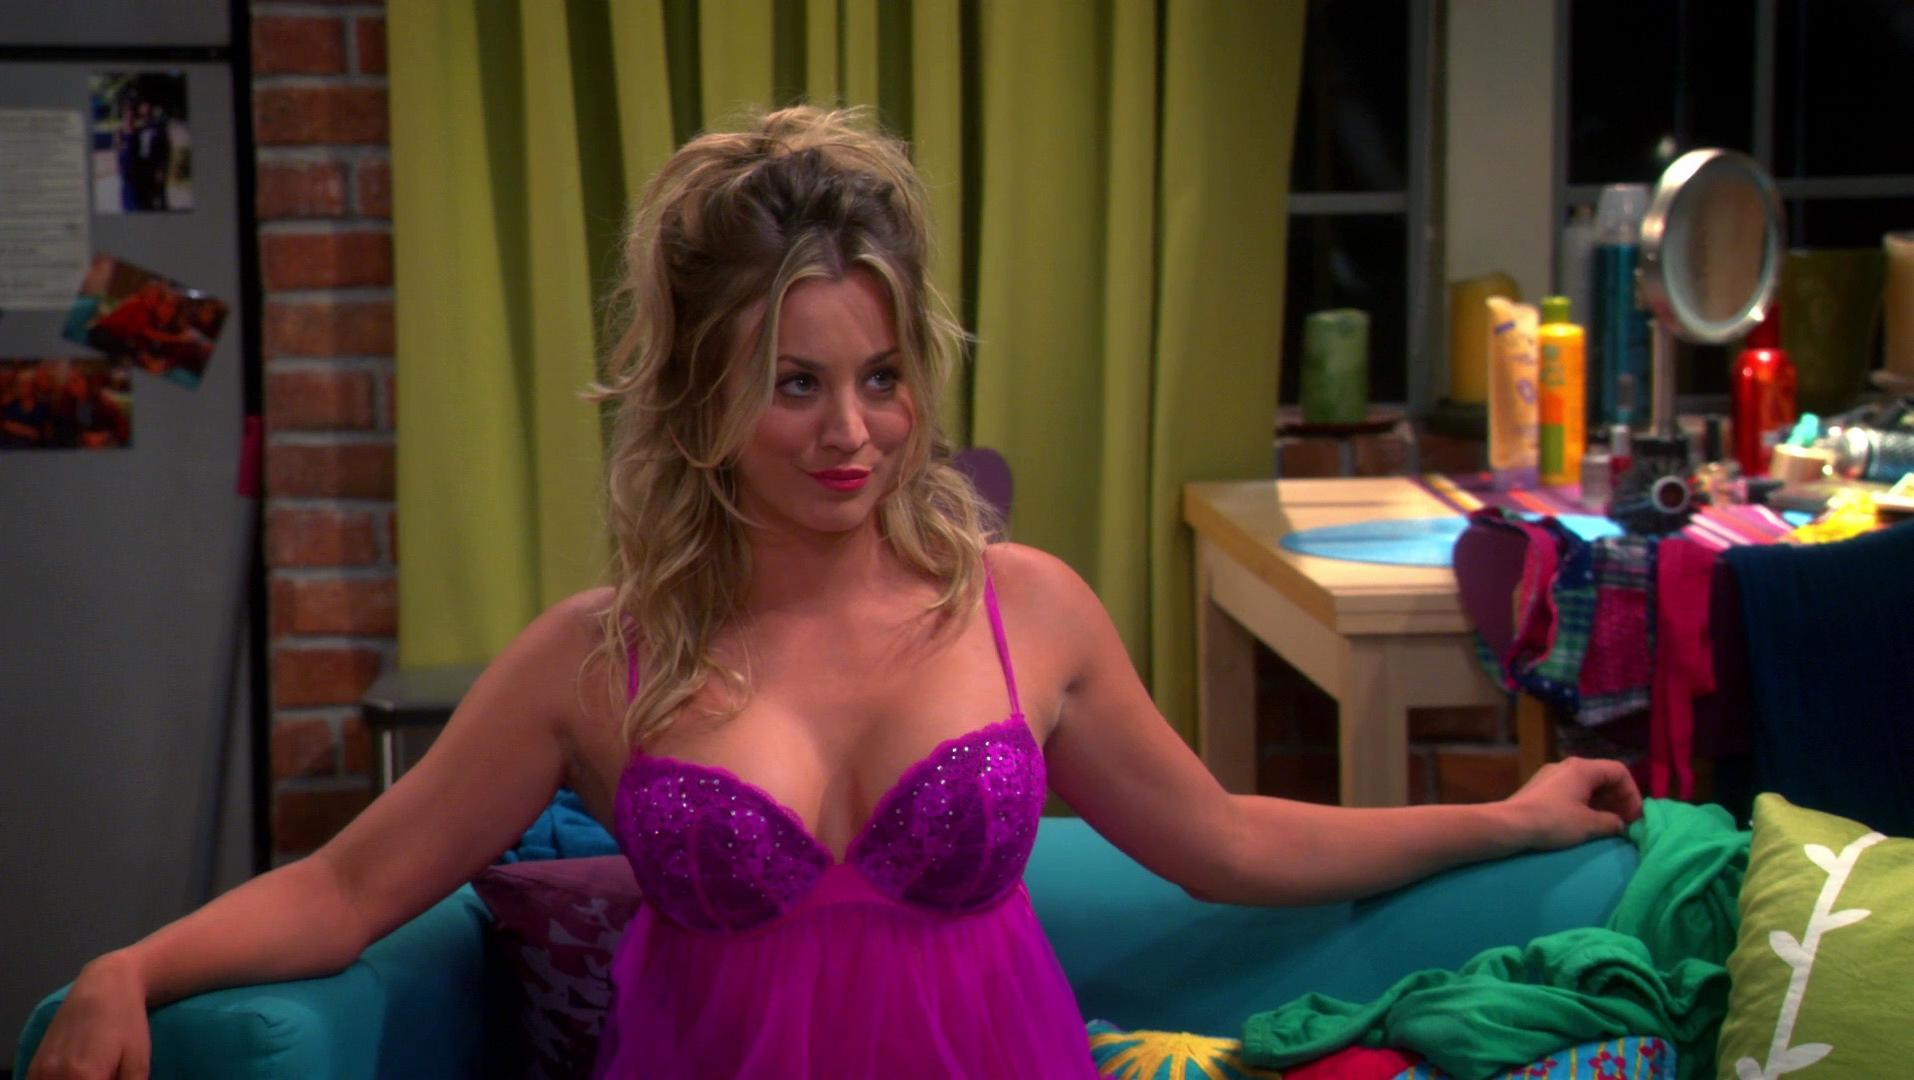 Kaley Cuoco sexy - The Big Bang Theory s07e04 (2013)